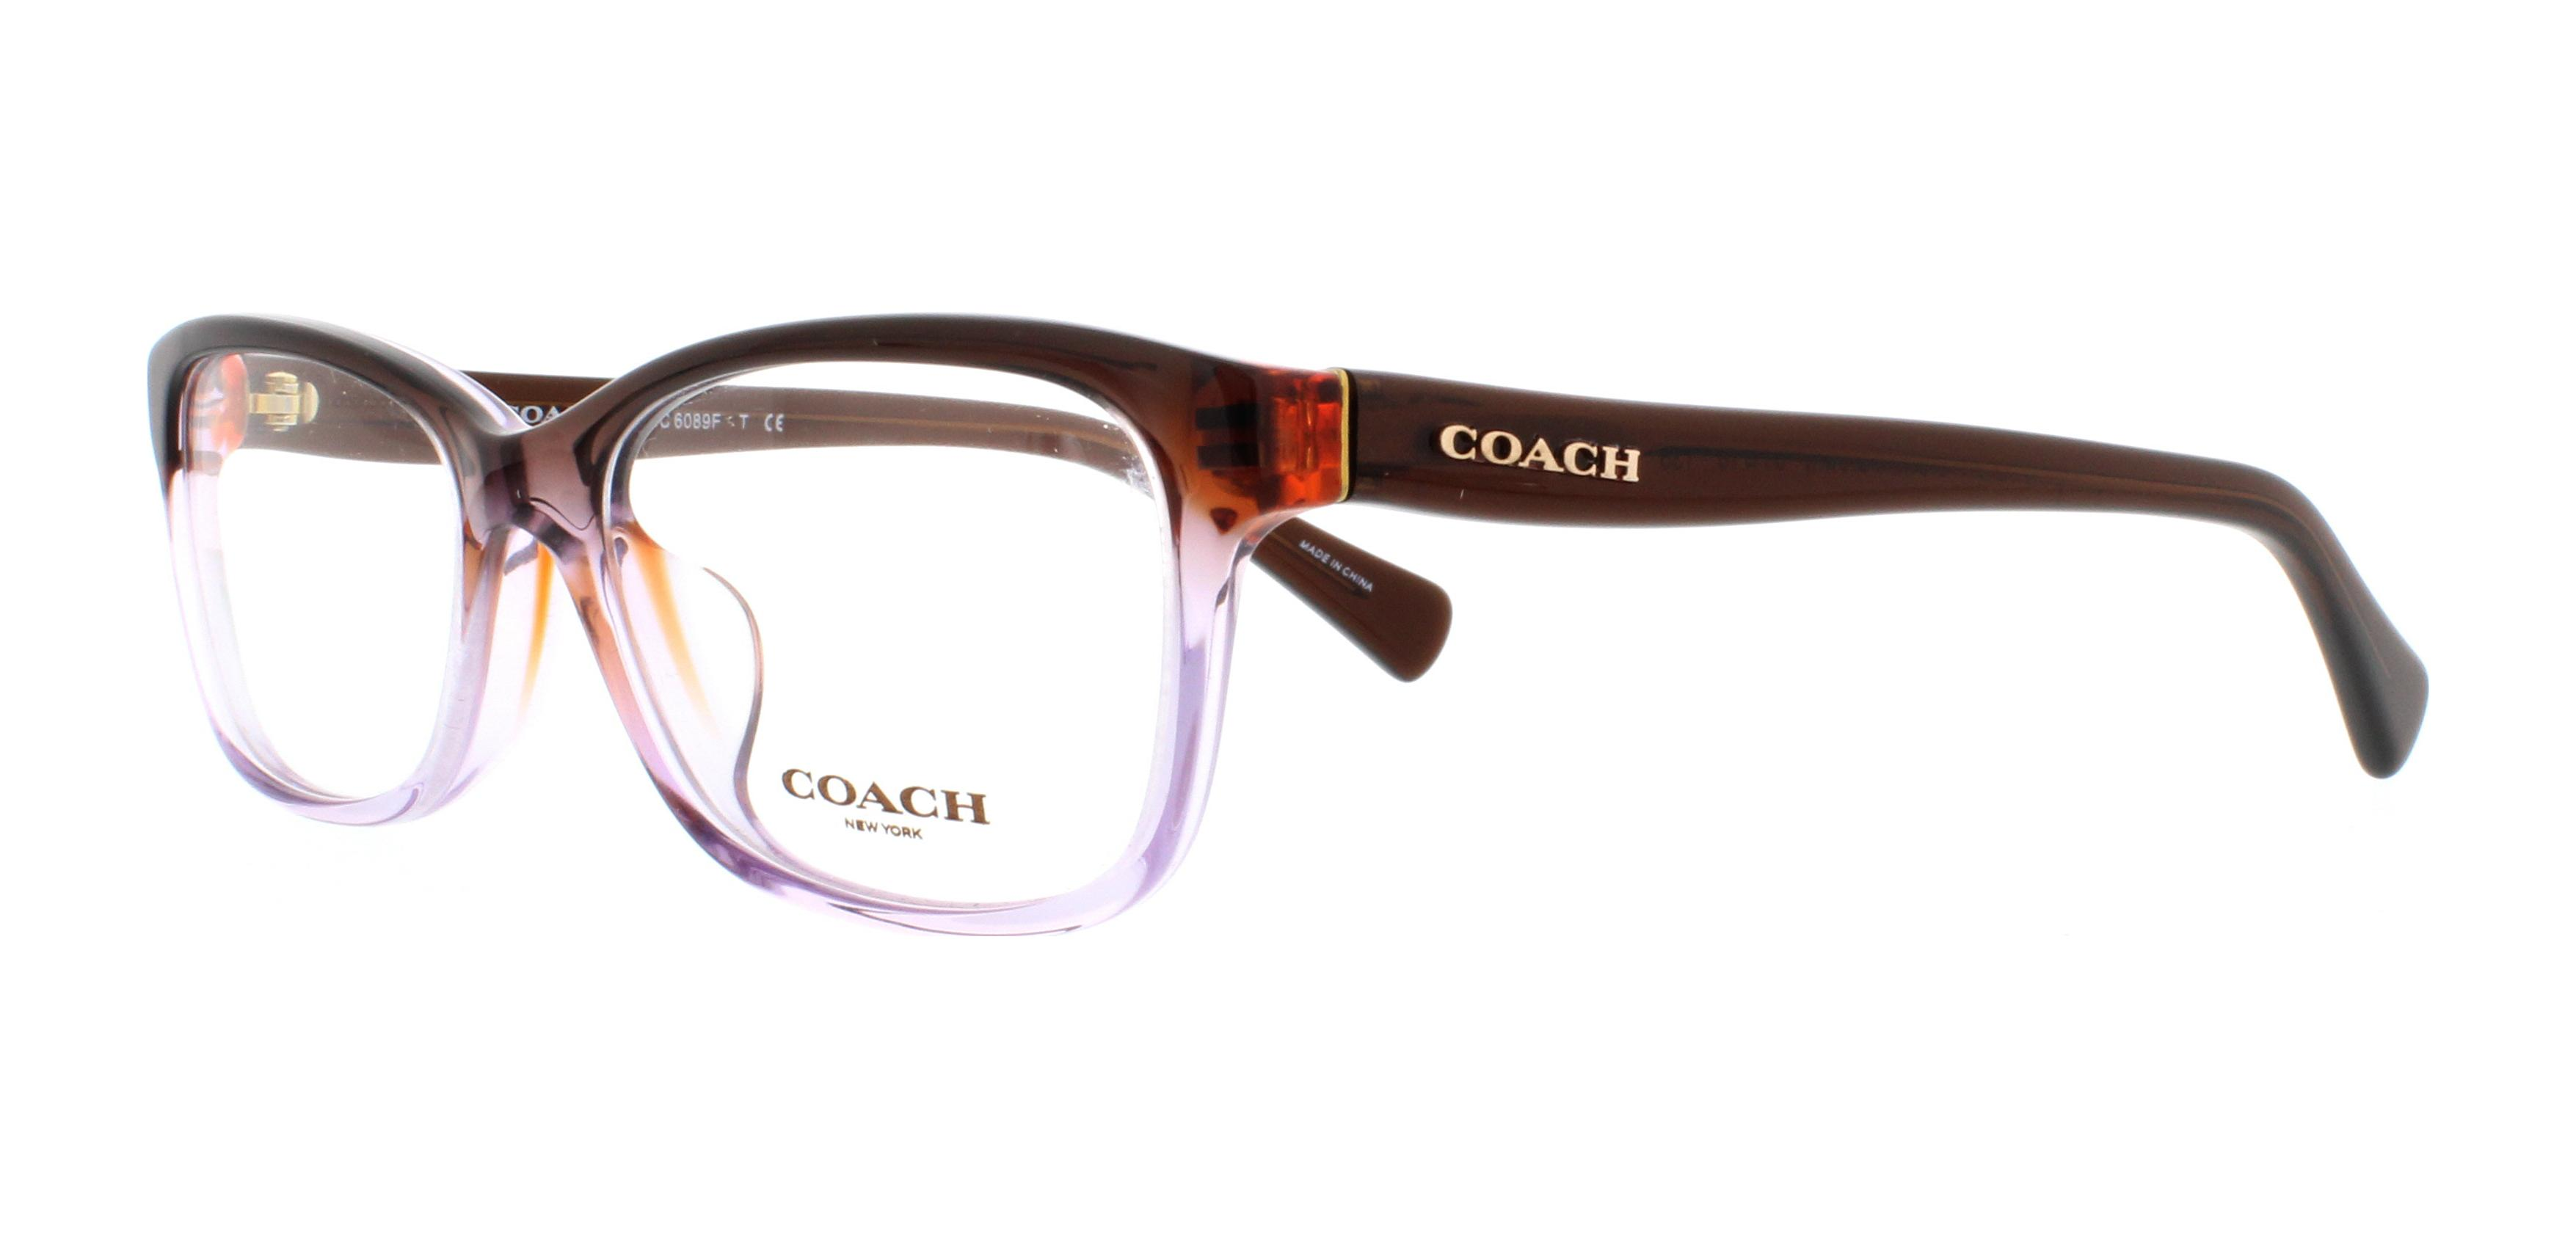 COACH Eyeglasses HC6089F 5401 Purple Brown Gradient/Brown 51MM | eBay